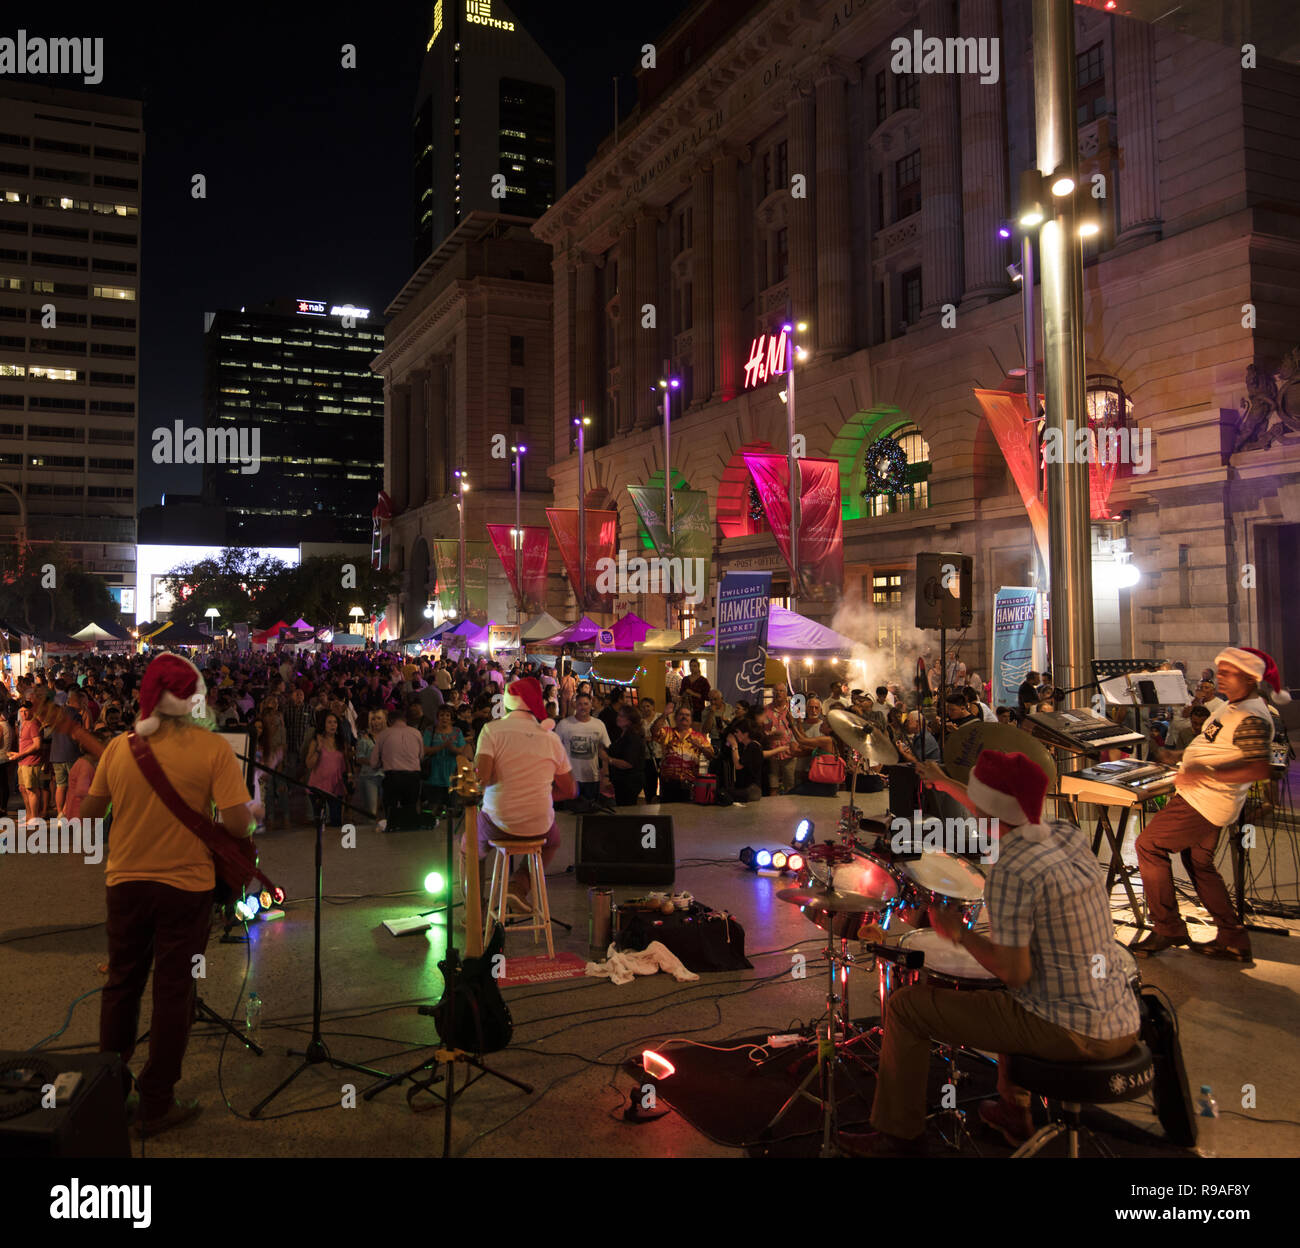 Perth, Australia. 21st December 2018. People enjoying street food, music and dance in a festive Christmas atmosphere, outdoors in the centre of Perth, Western Australia, on a warm Friday evening. Credit: Joe Kuis / Alamy Live News - Stock Image